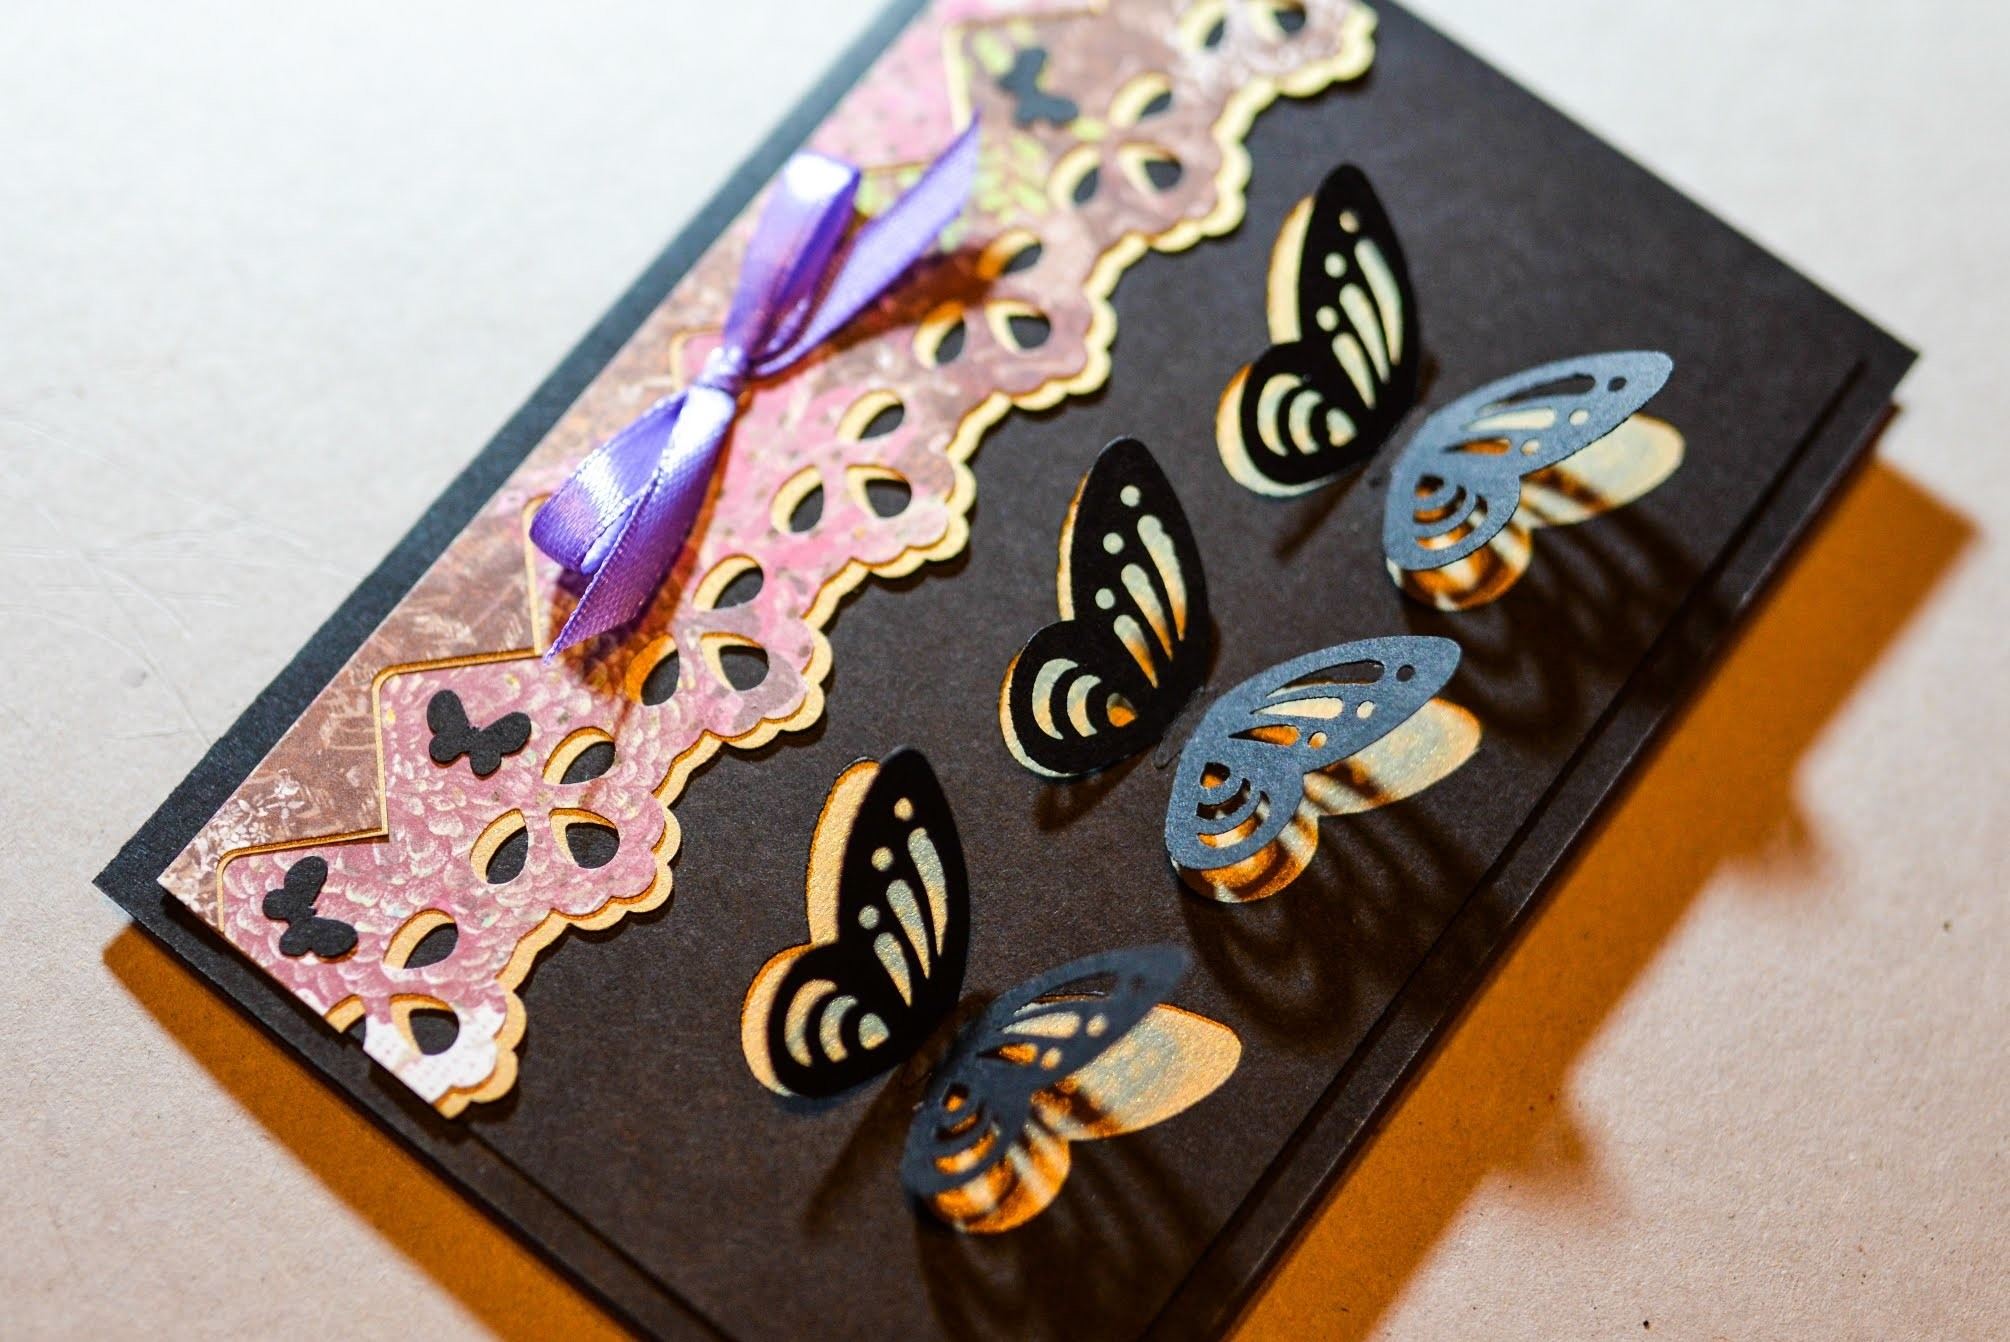 How to Make - Decorative Greeting Card With Butterflies - Step by Step | Kartka Z Czarnymi Motylami